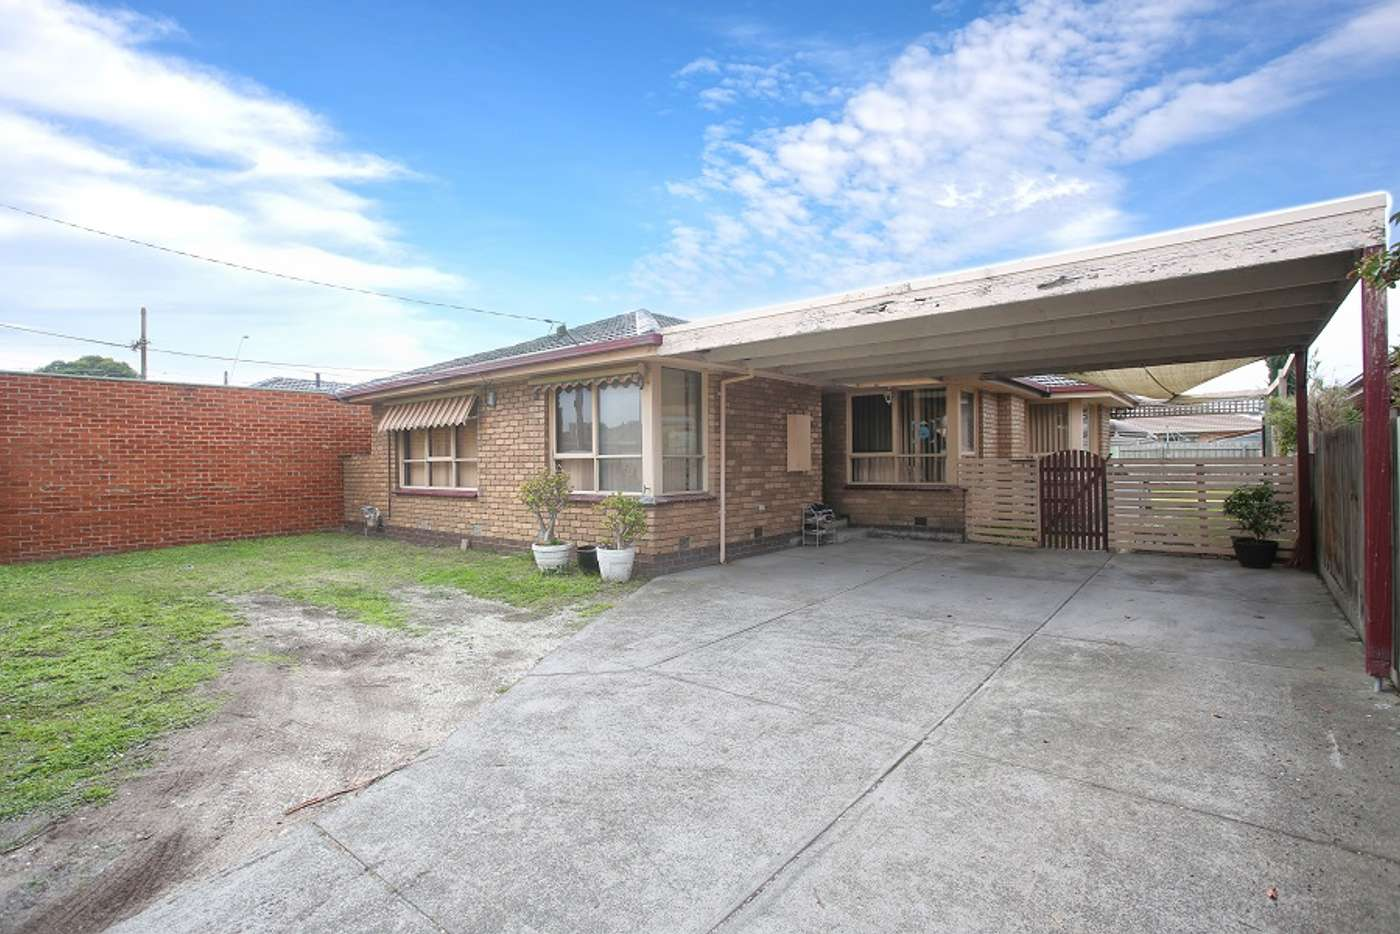 Main view of Homely house listing, 71 Kingsclere Ave, Keysborough VIC 3173